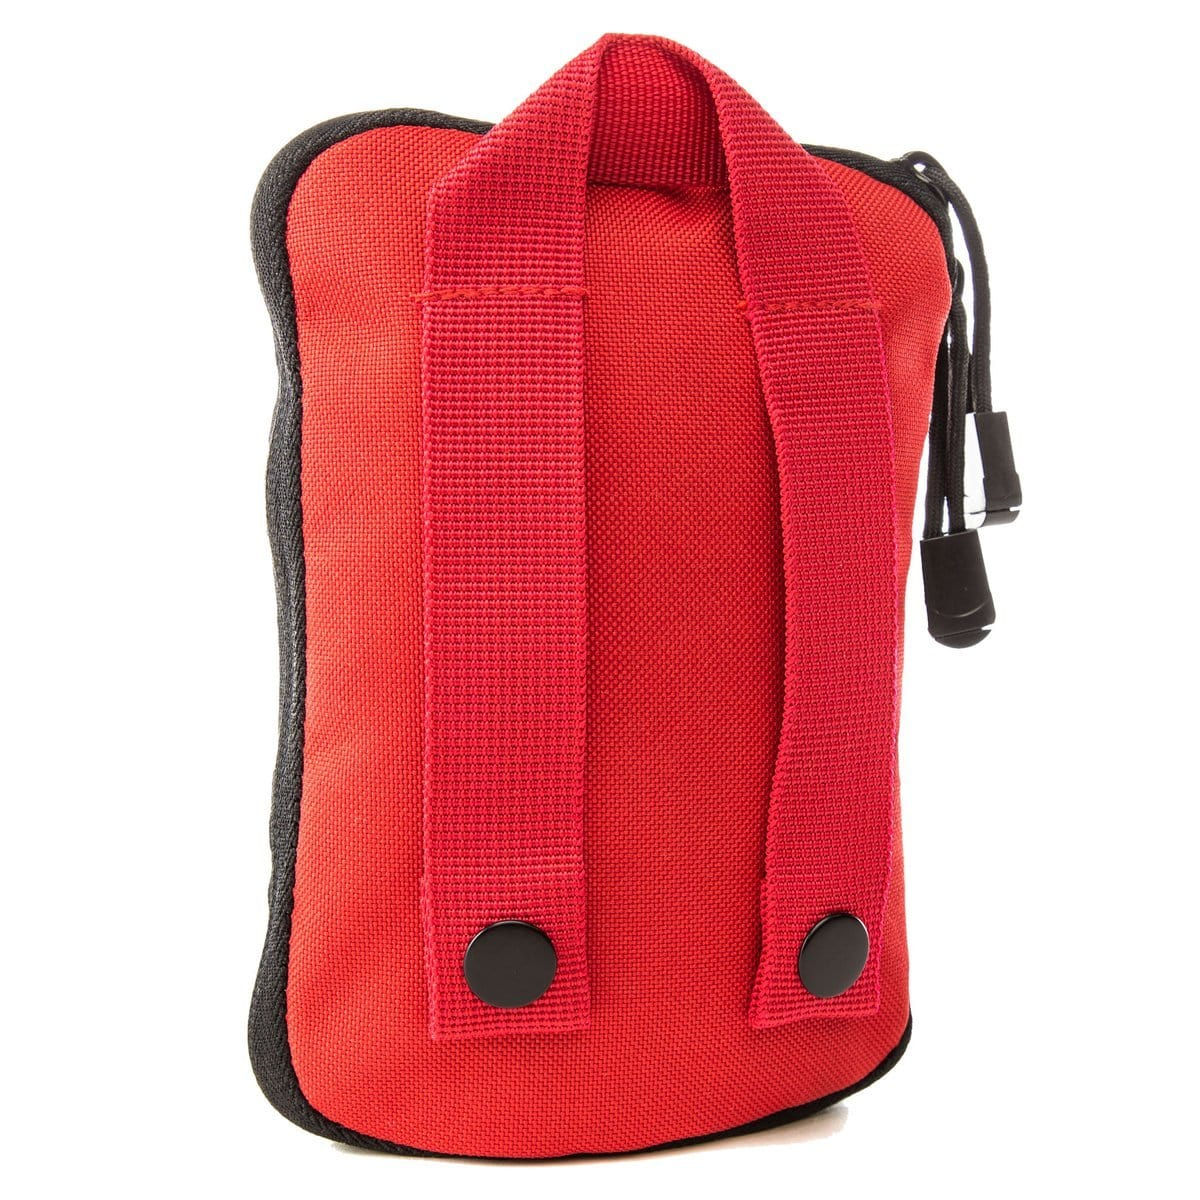 Back of The Solo: Advanced mini first aid kit (RED) by MyMedic